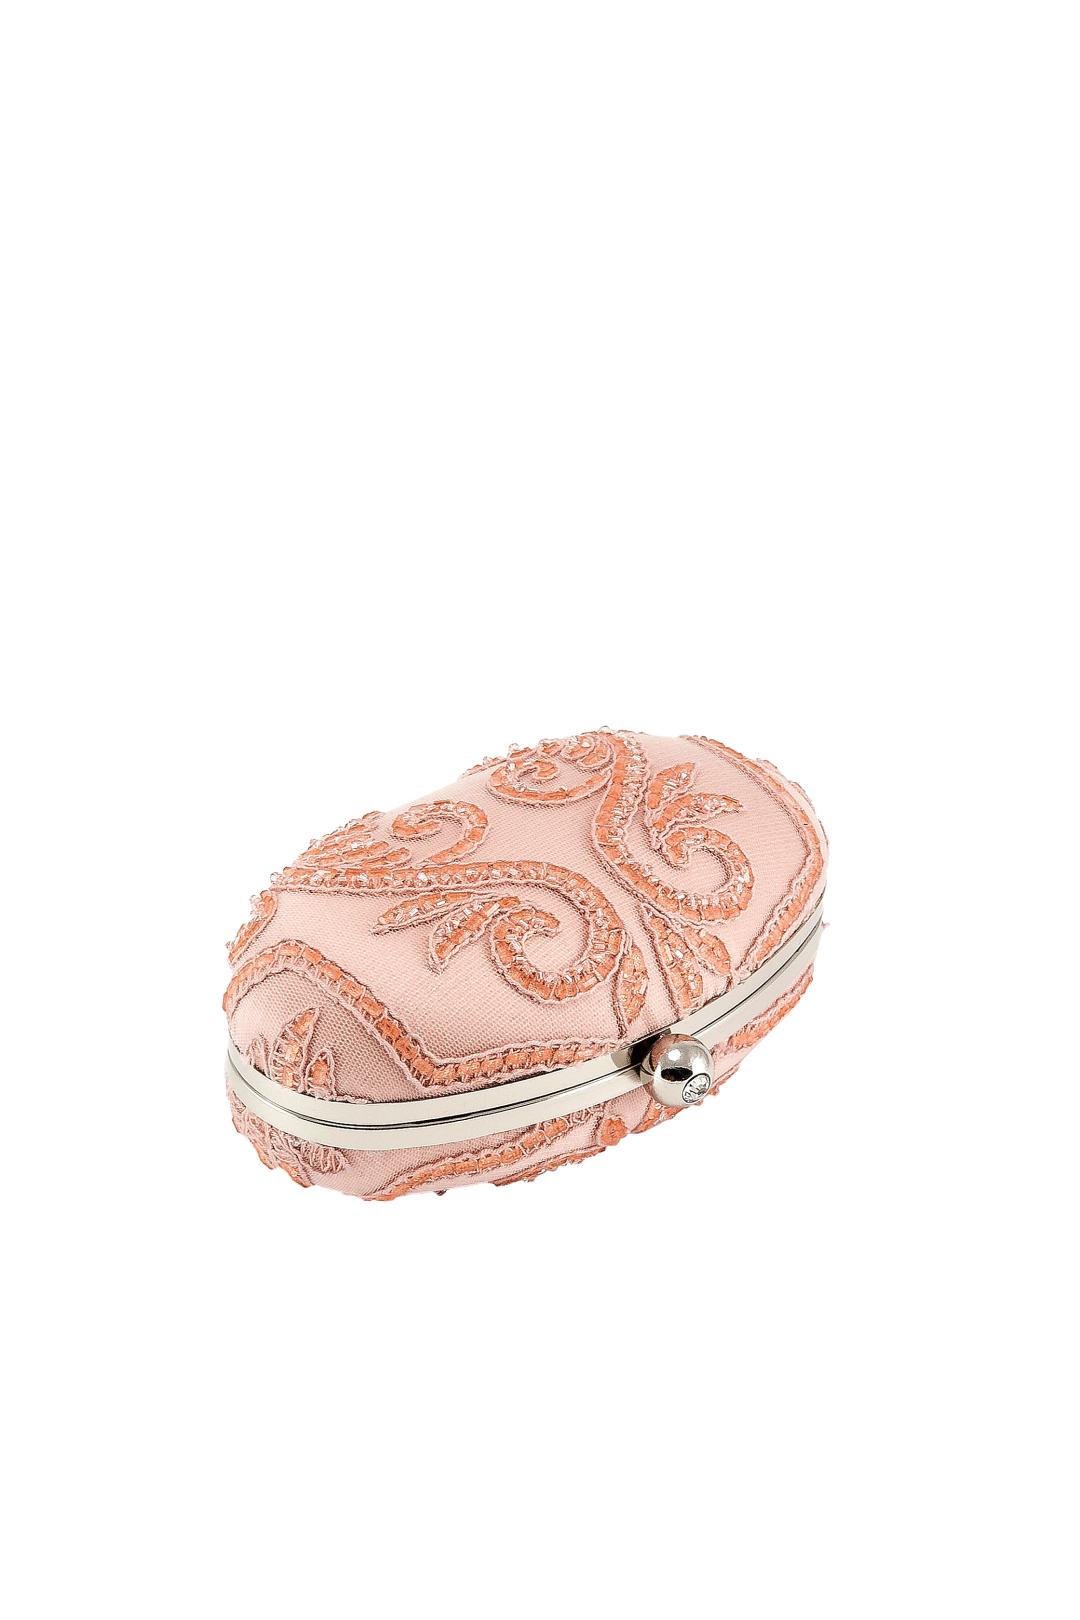 Embroidered Tulle Oval Clutch